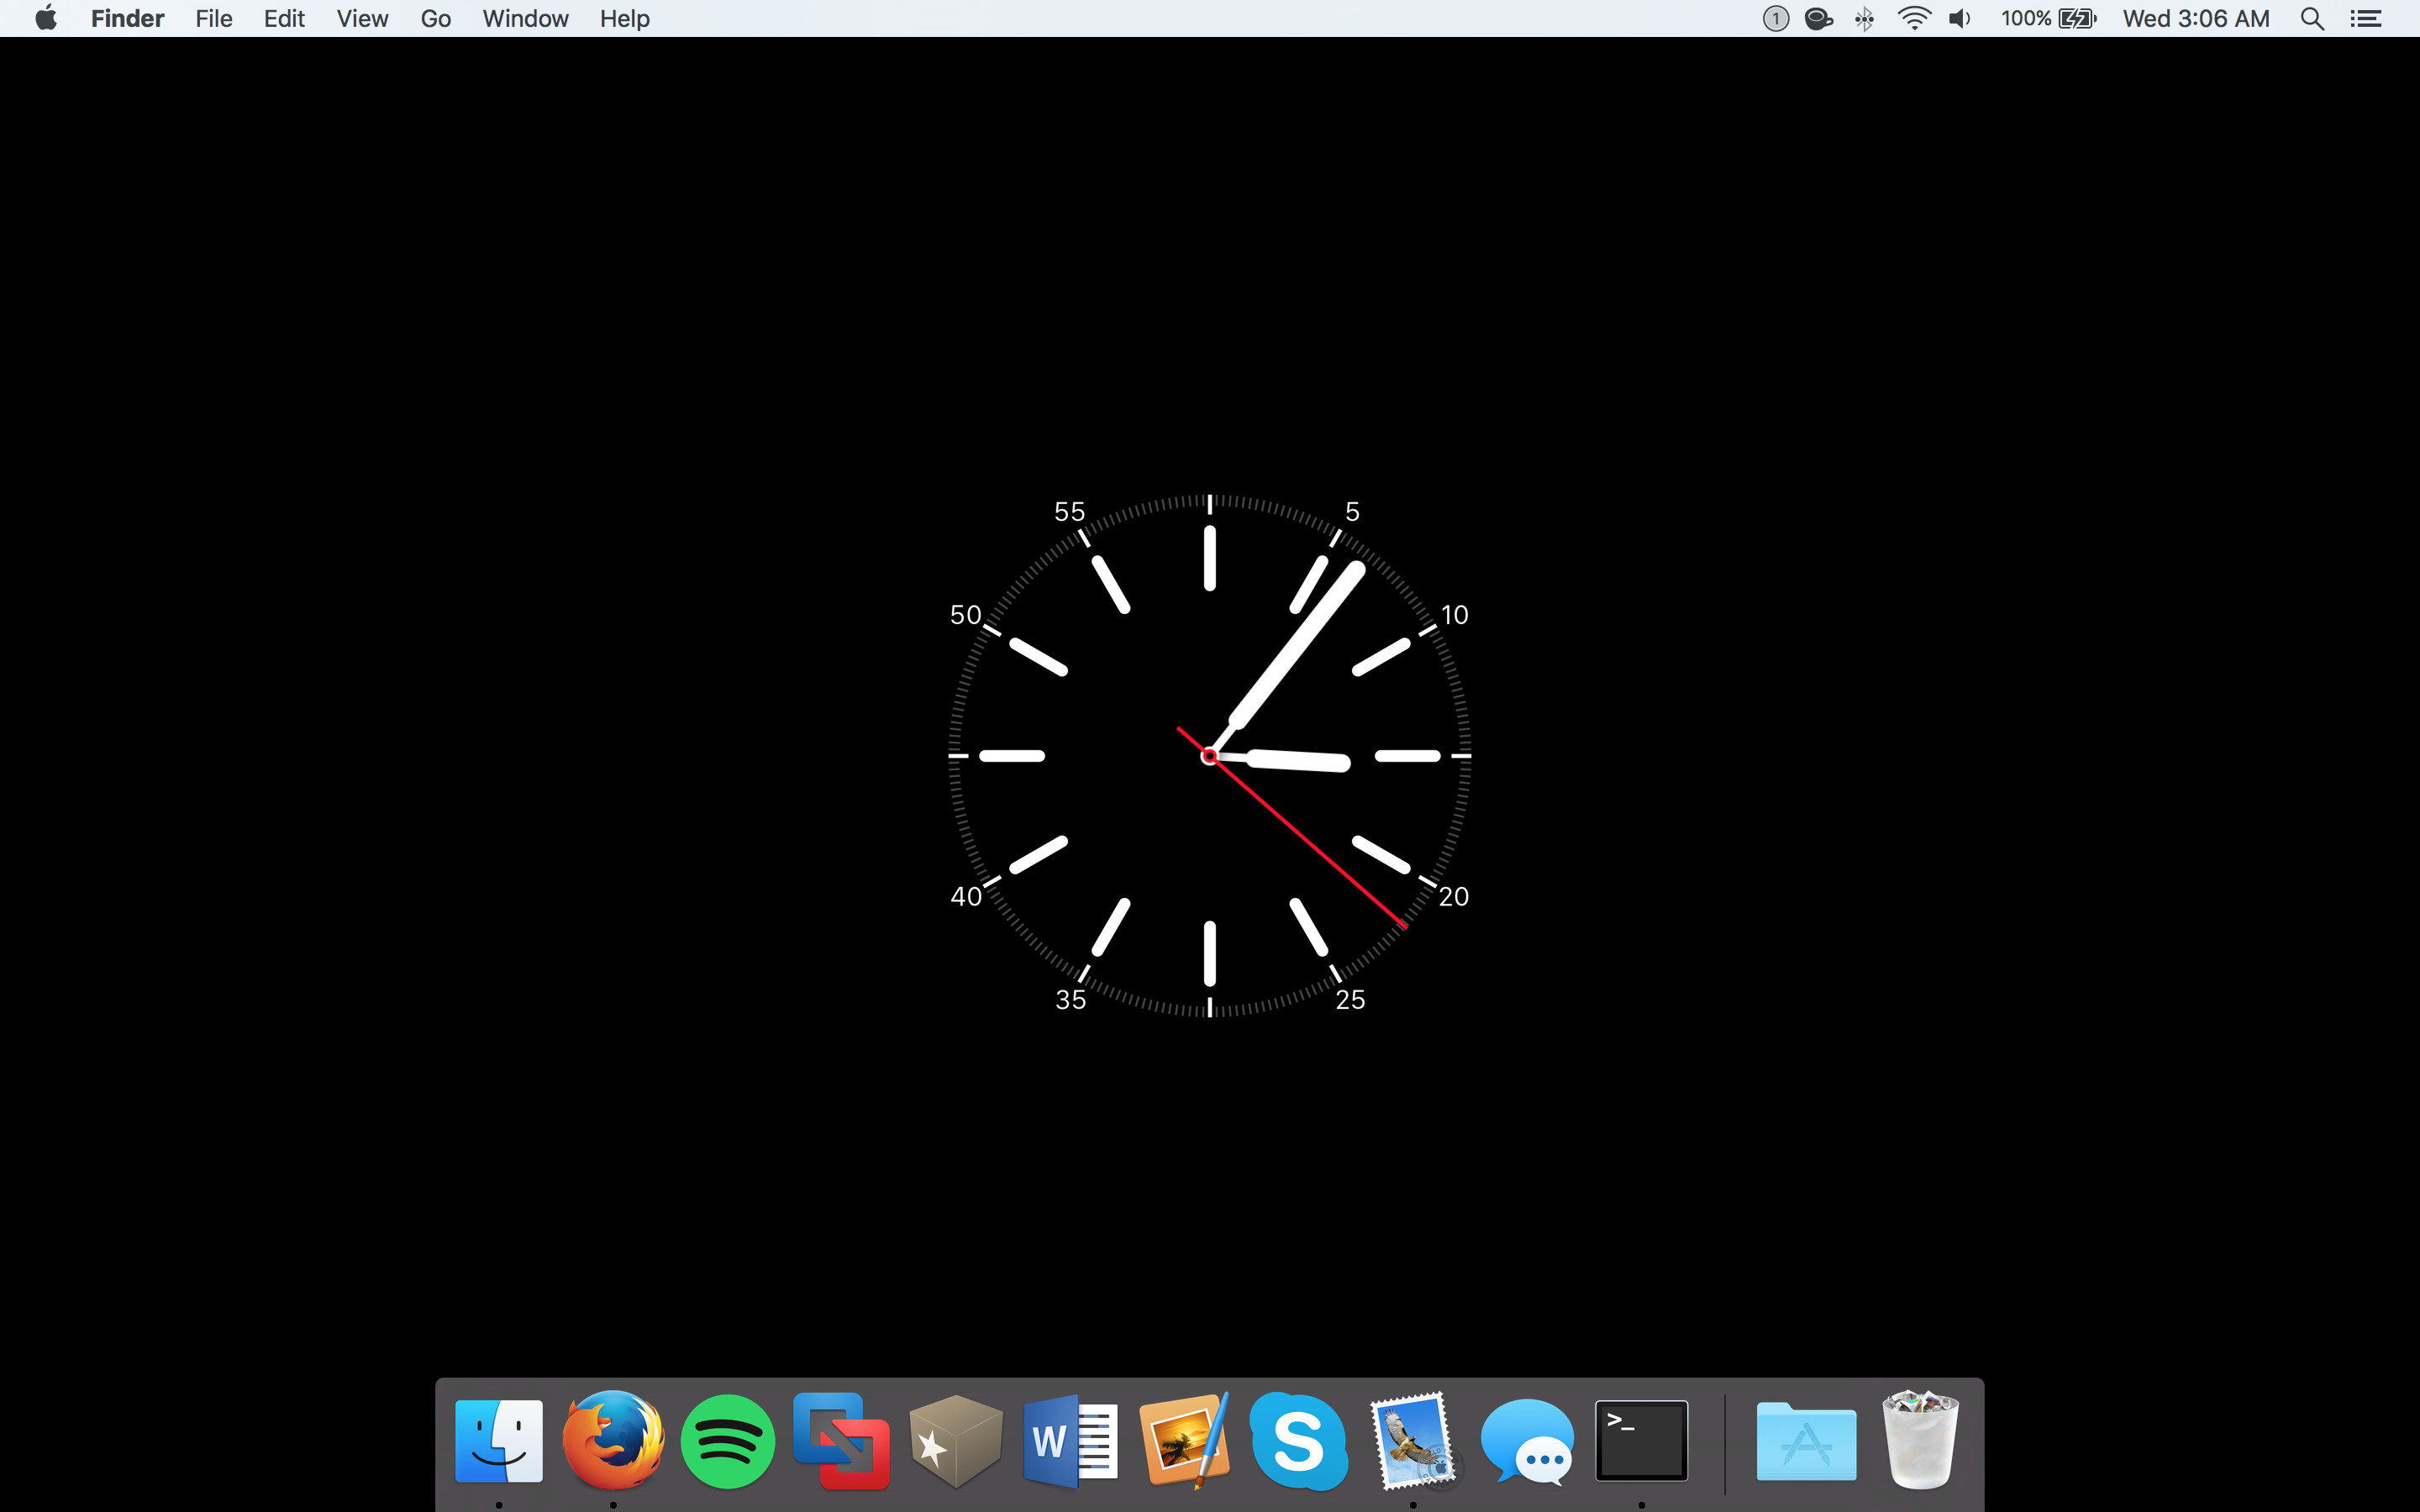 2880x1800 OS X how to set screensaver as wallpaper on mac guide